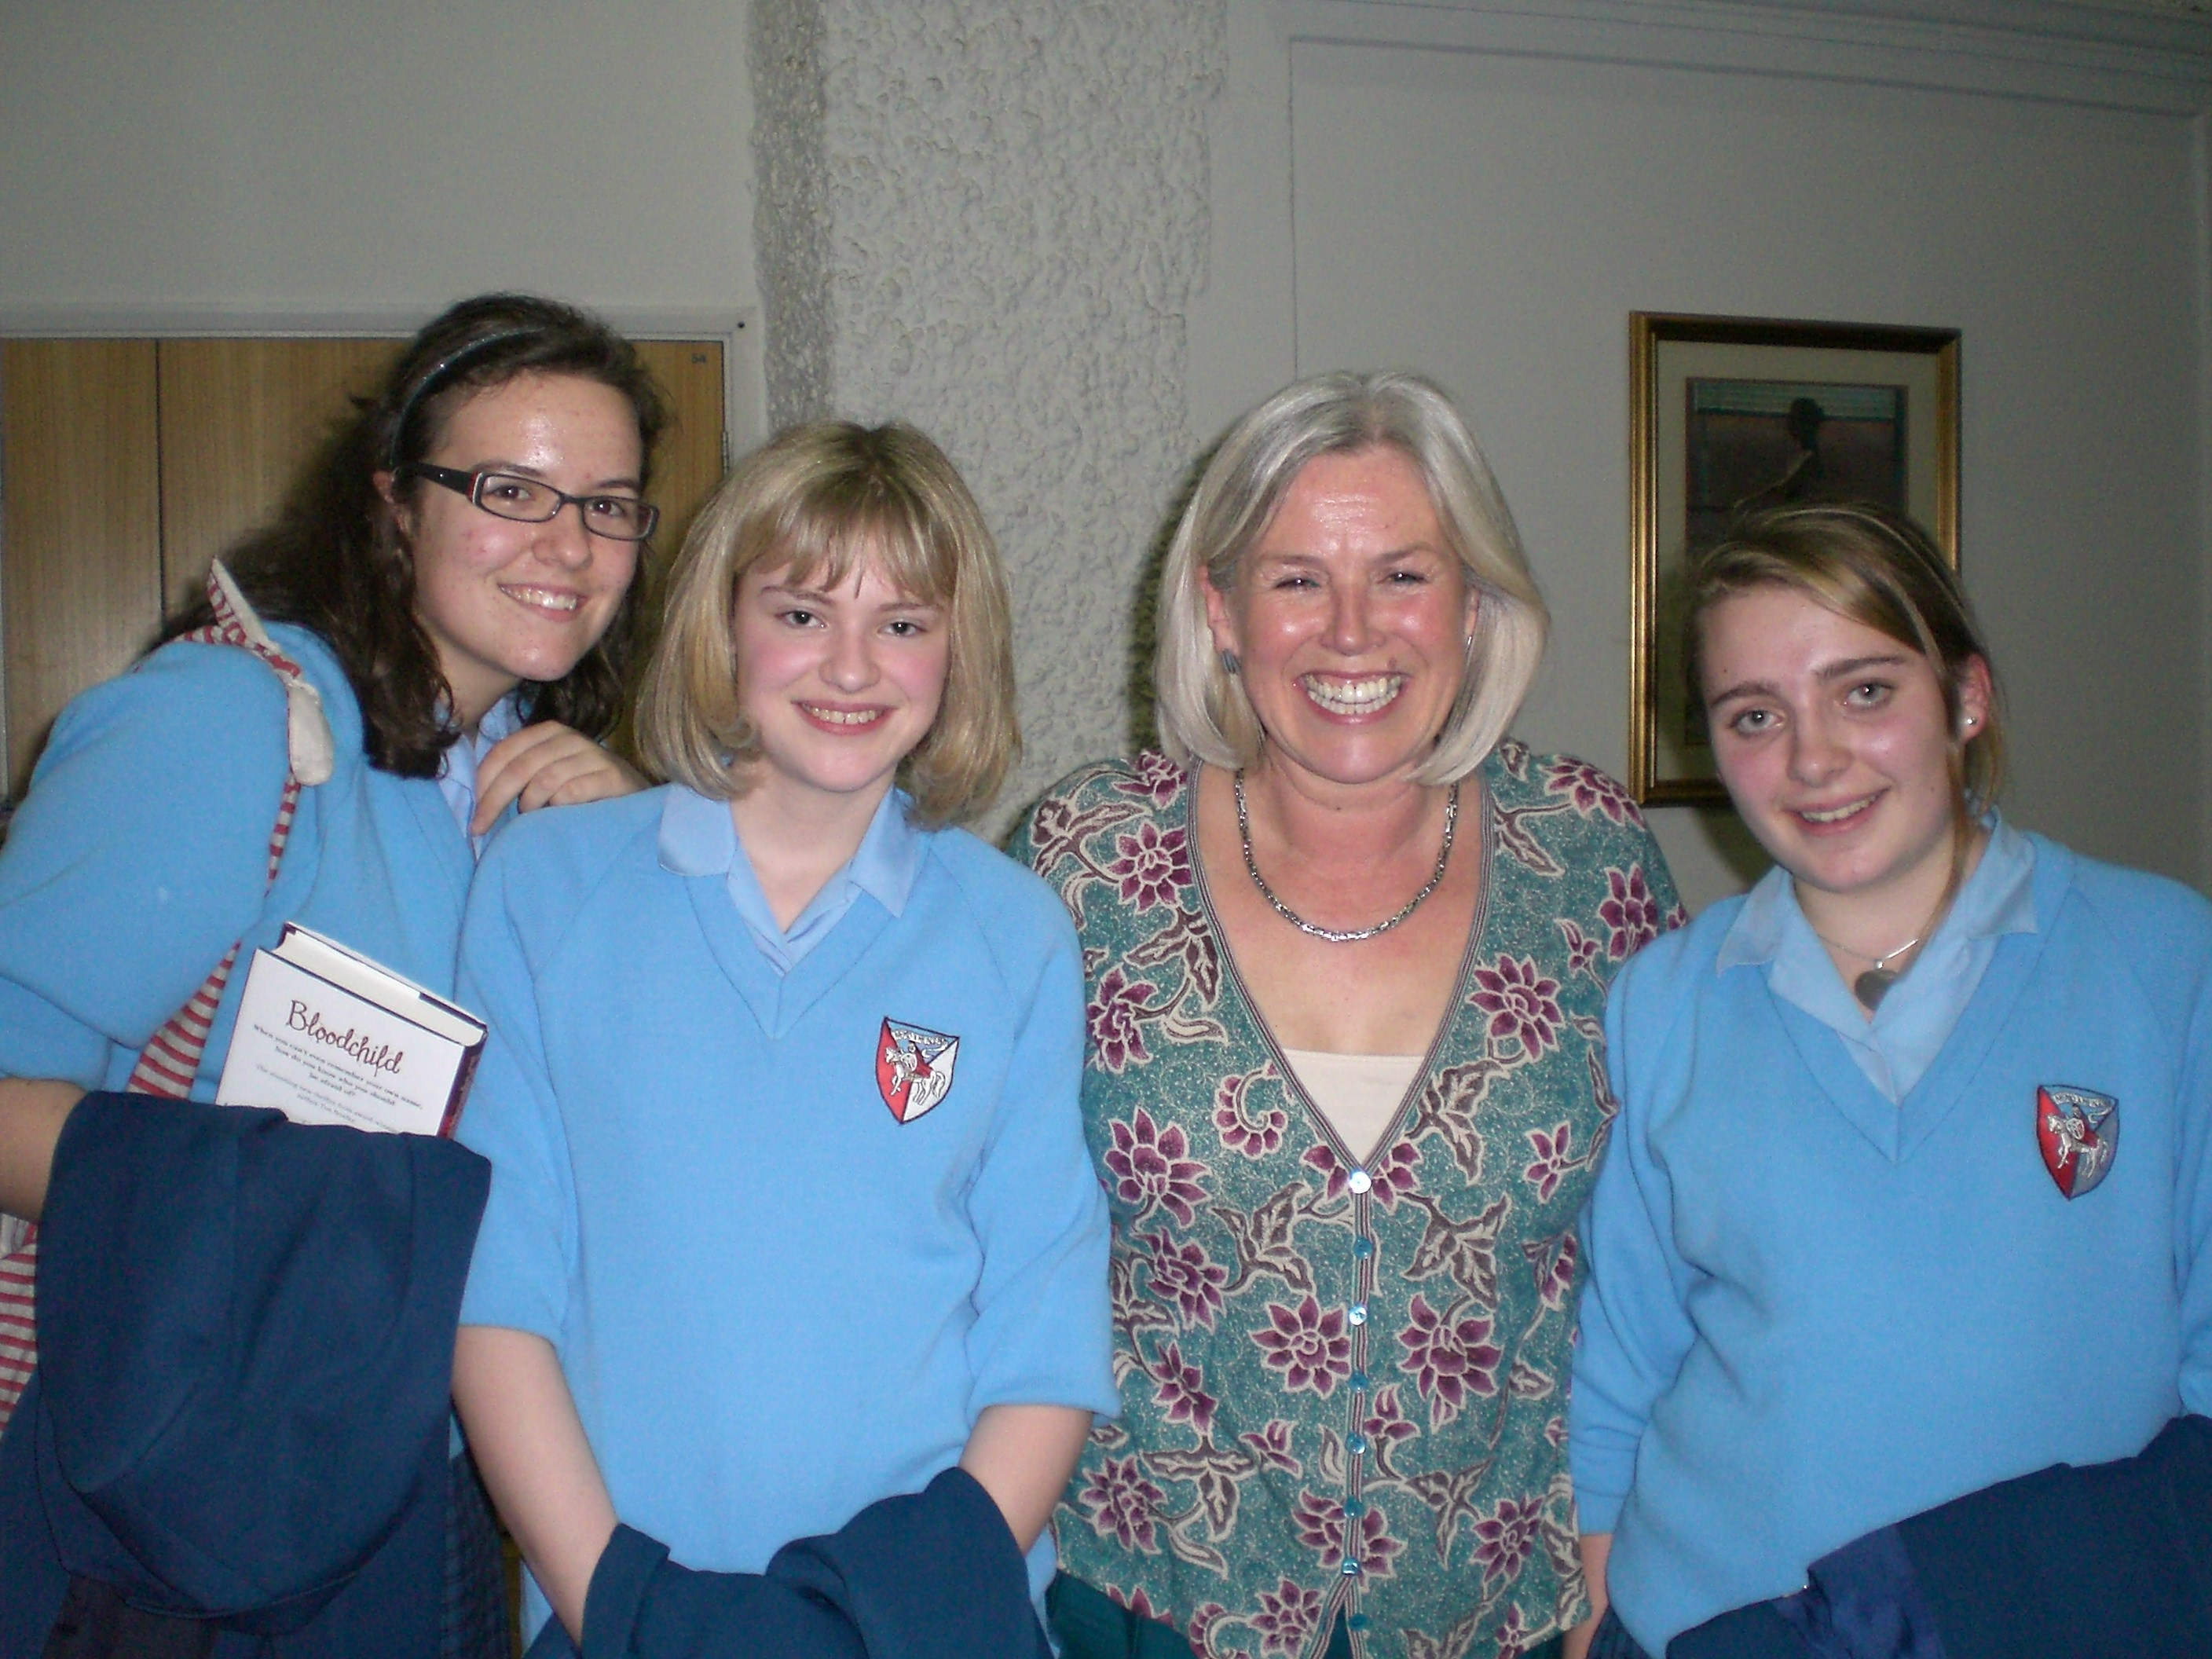 Hosting the Southern Schools Book Awards, 2008